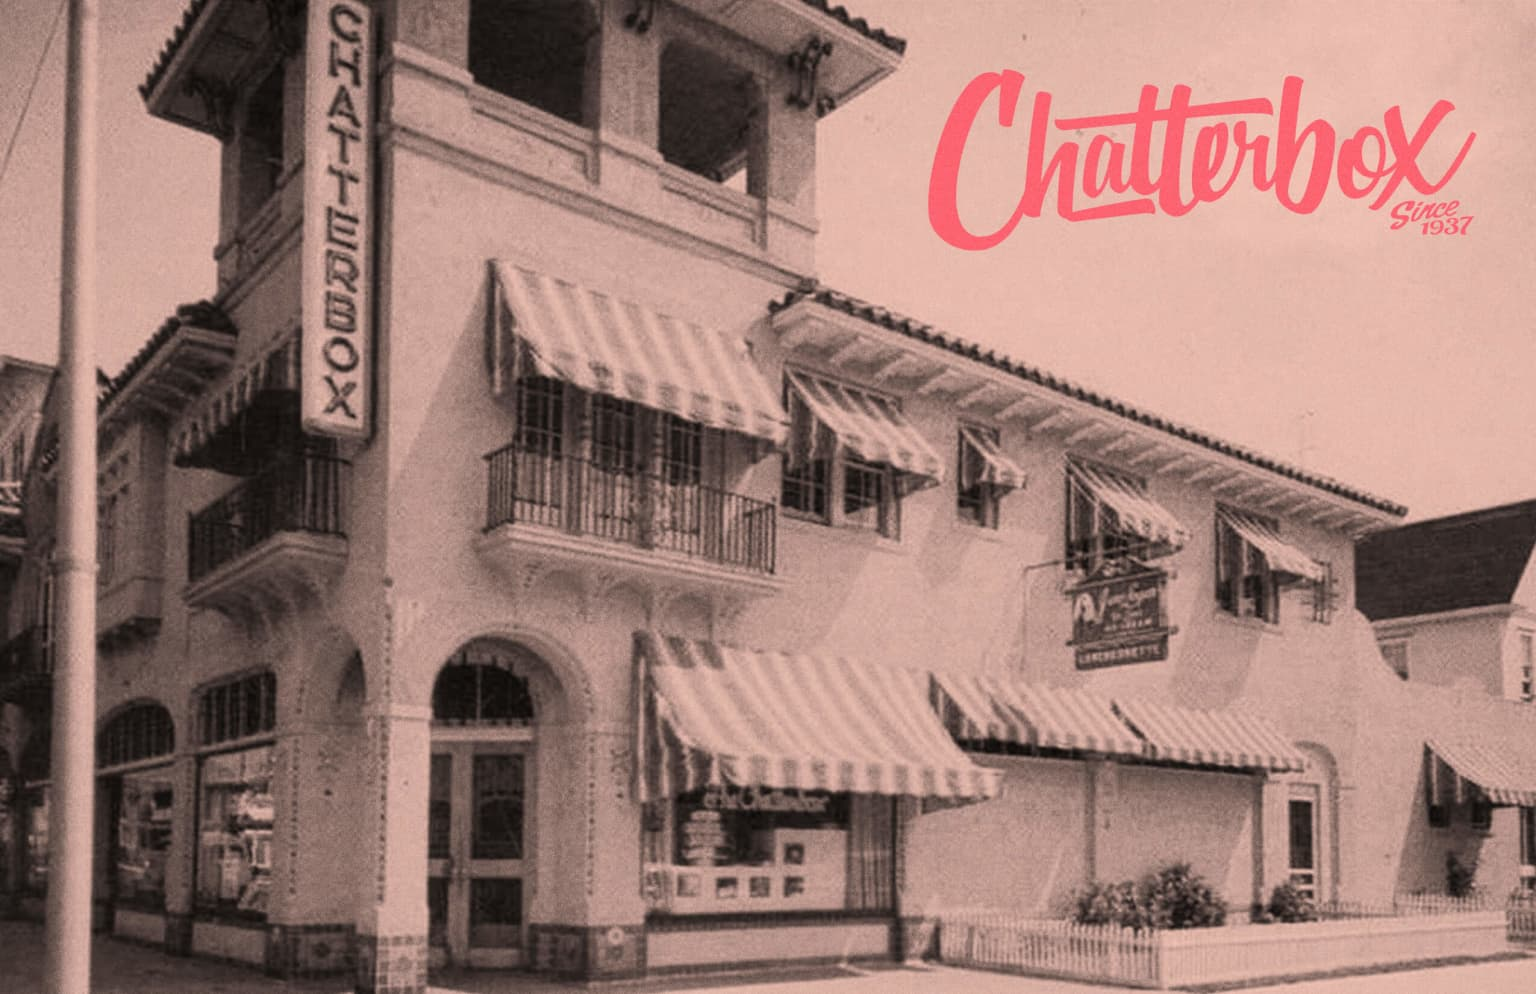 Chatterbox / Central Creamery